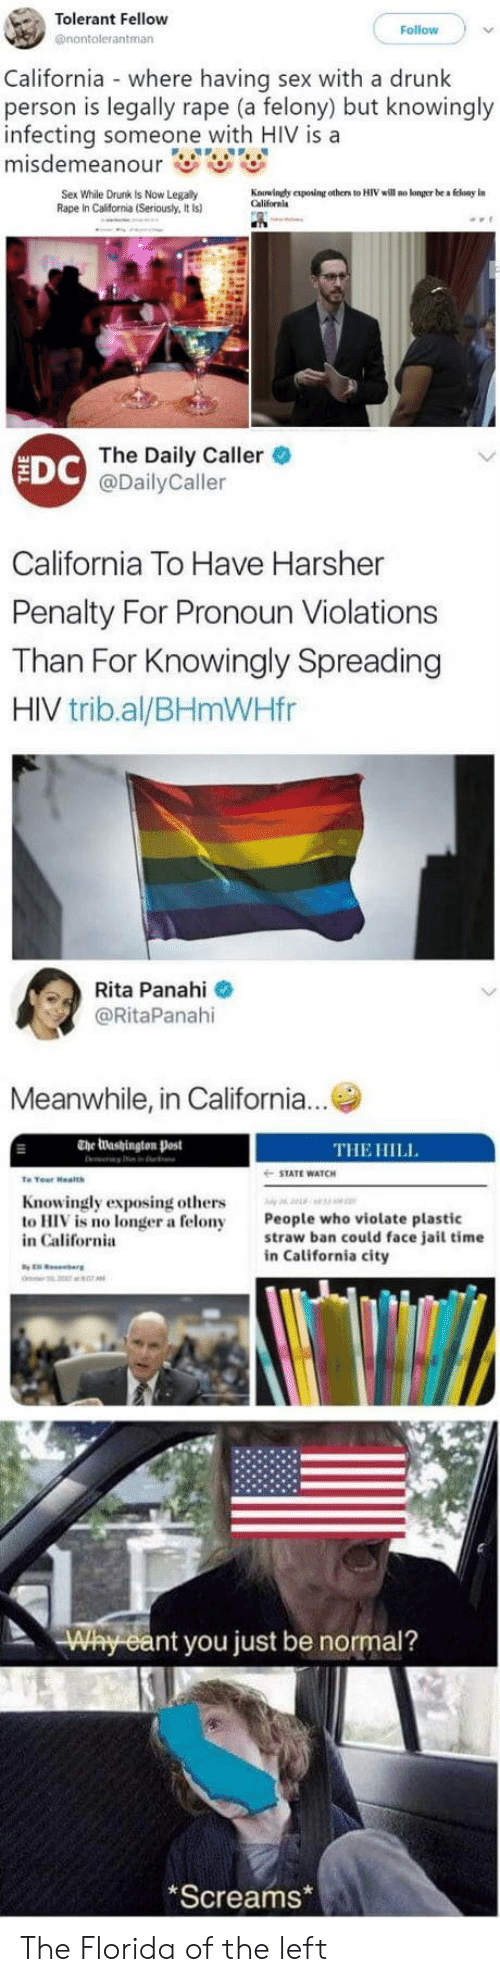 Drunk, Jail, and Sex: Tolerant Fellow  @nontolerantman  Follow  California where having sex with a drunk  person is legally rape (a felony) but knowingly  infecting someone with HIV is a  Sex While Drunk Is Now Legally  Rape In California (Seriously, It Is)  Kauuindy eposing others to HIV will no konger be a floay in  Californla  EDC  The Daily Caller  @DailyCaller  California To Have Harsher  Penalty For Pronoun Violations  Than For Knowingly Spreading  HIV trib.al/BHmWHfr  Rita Panahi  @RitaPanahi  Meanwhile, in California...  The Washington Post  THE HILL  STATE WATCH  Knowingly exposing others  to HIV is no longer a felony  in California  People who violate plastic  straw ban could face jail time  in California city  nt you just be normal?  Screams The Florida of the left